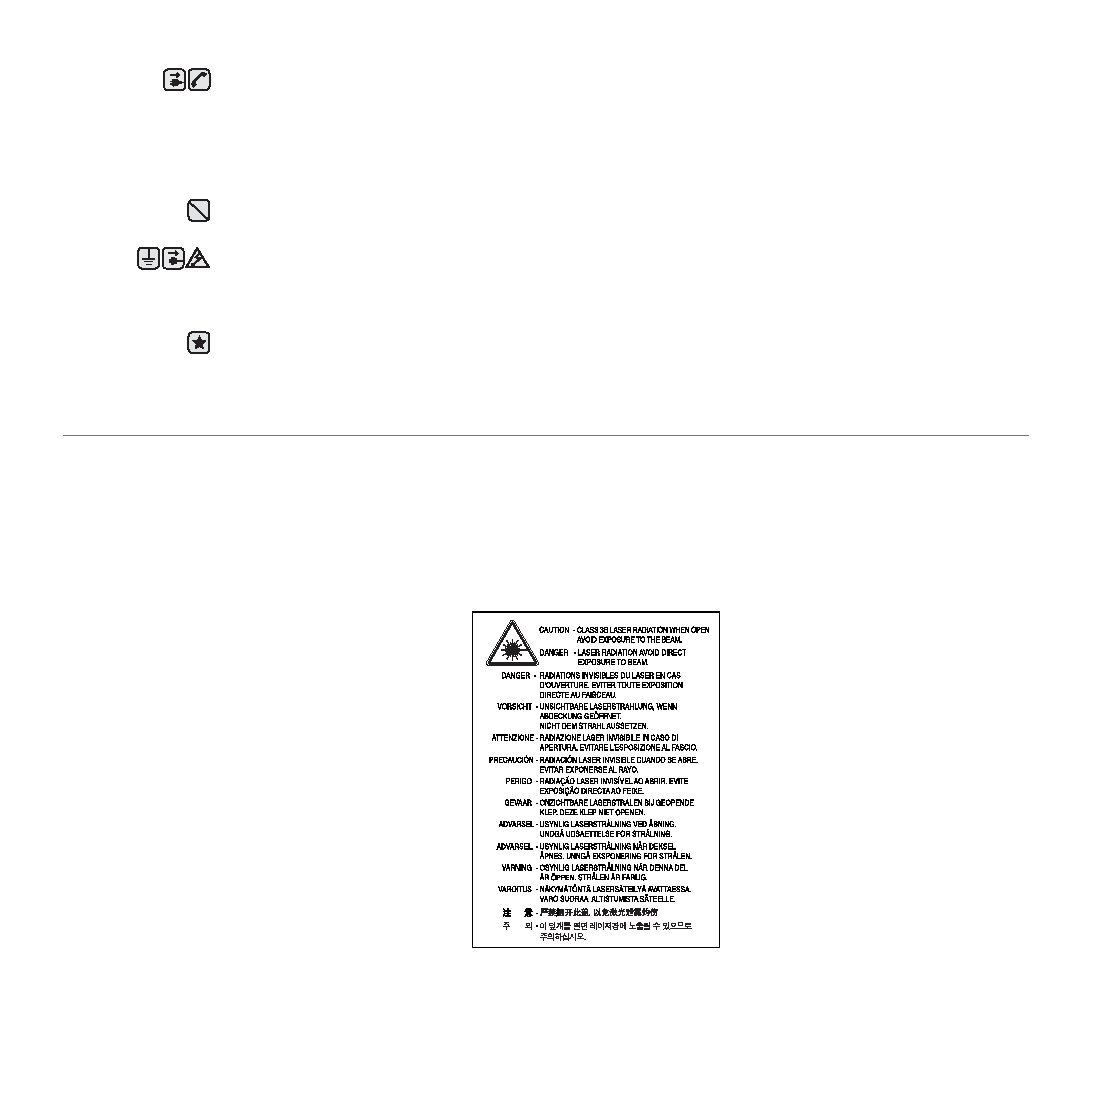 Samsung SCX-4826FN User Manual (ver.1.00). Page 6, as of